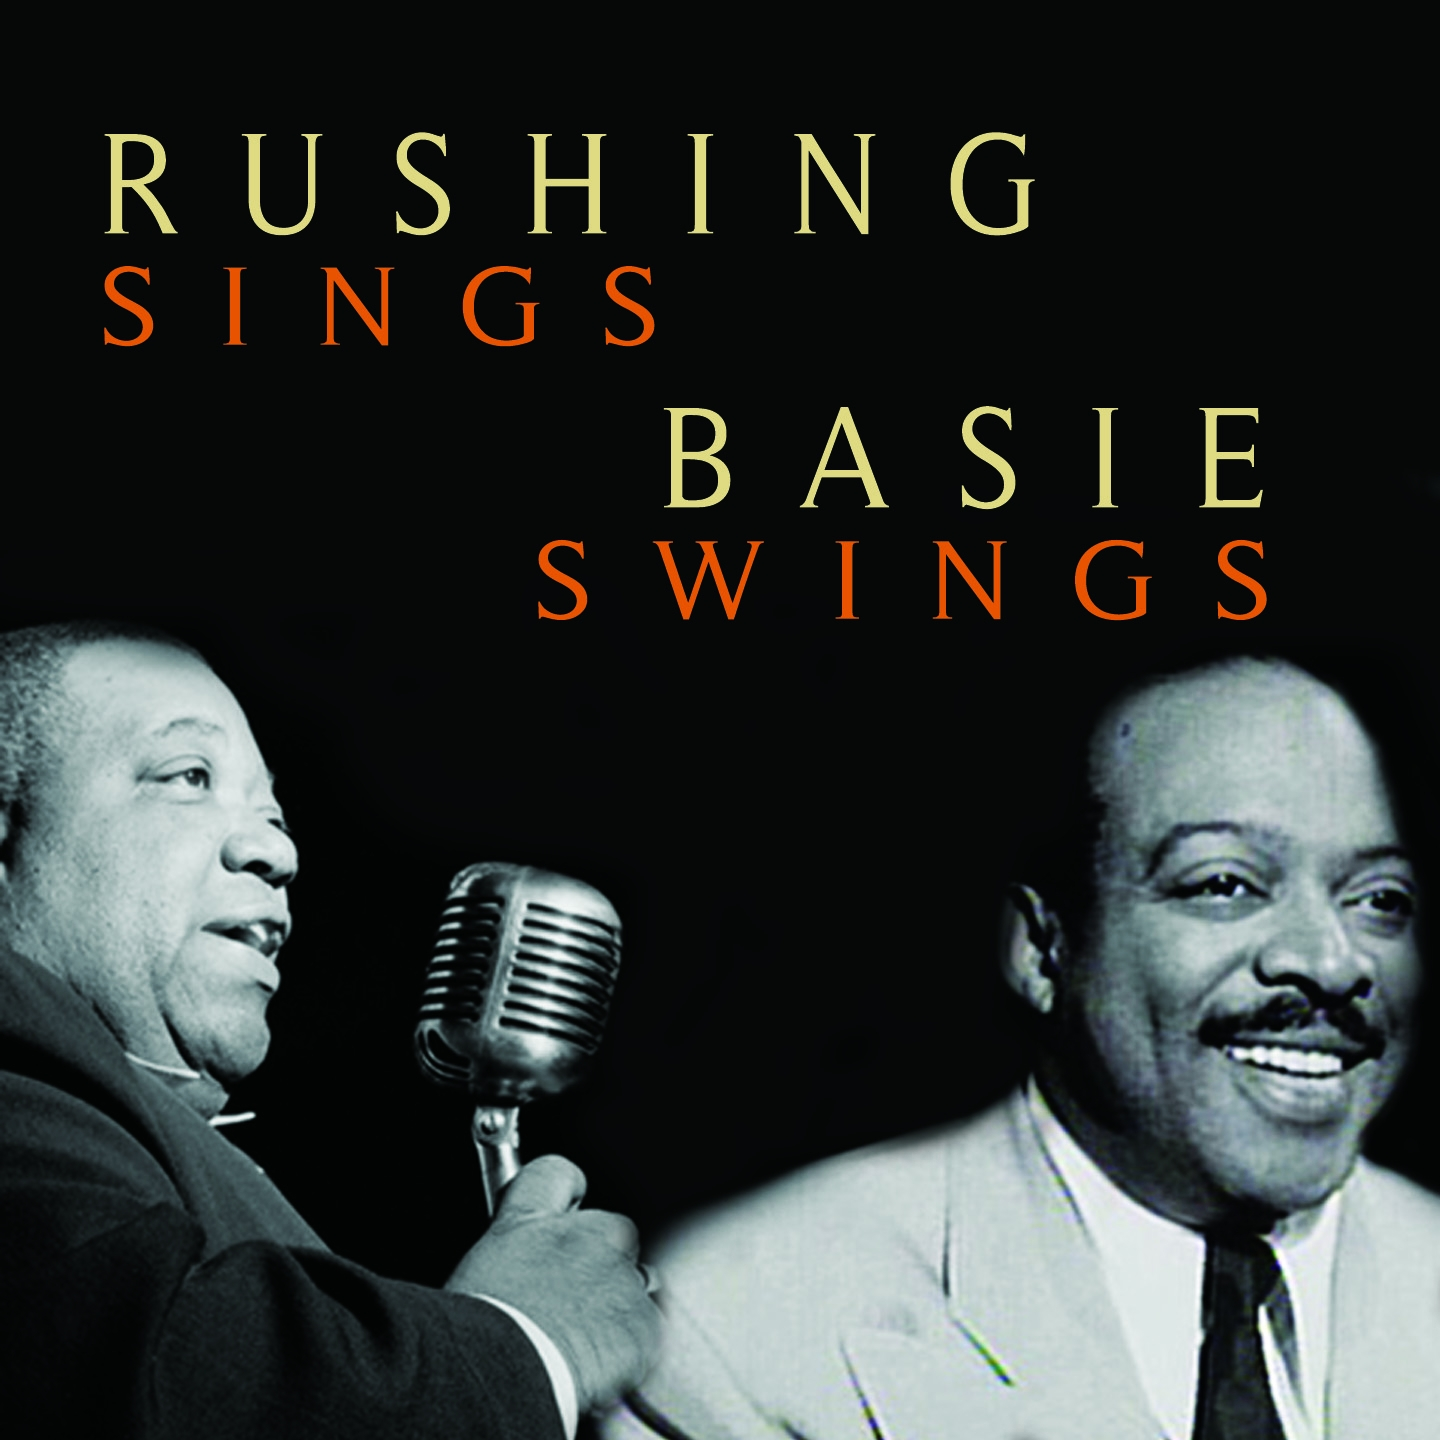 Rushing Sings, Basie Swings